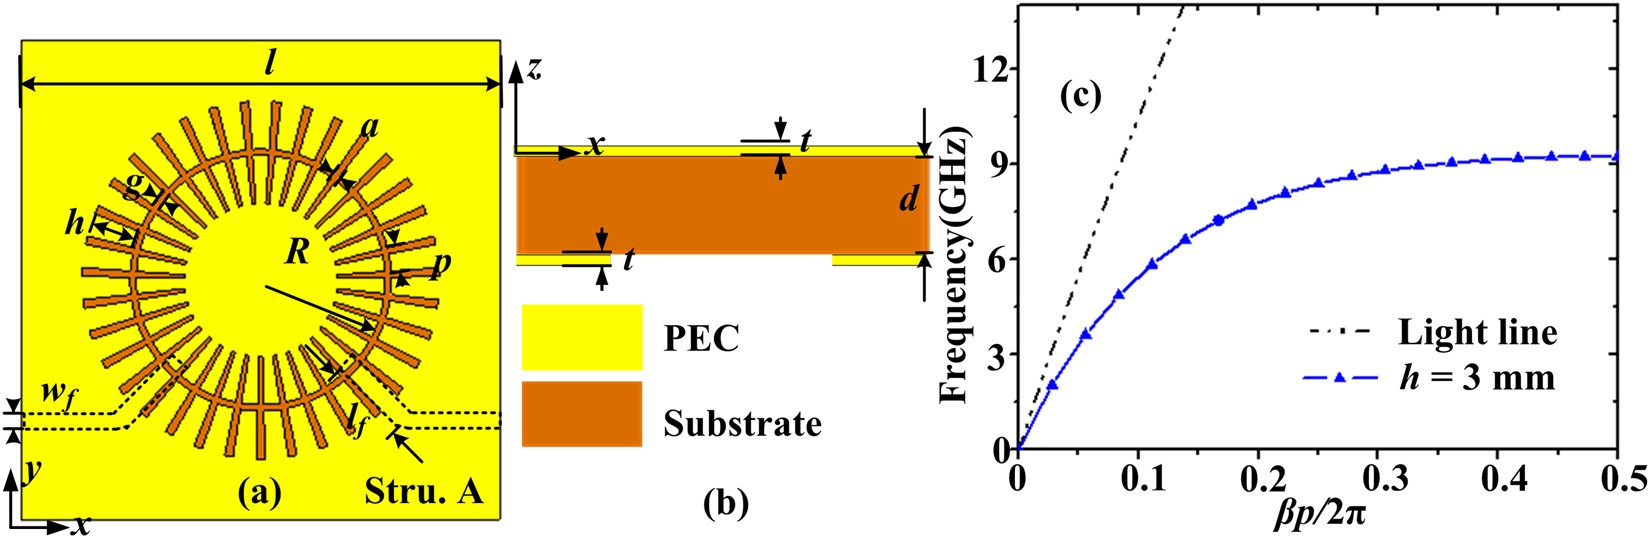 Compact Wideband Plasmonic Filter With Flat Top Transmission Good Pix For Band Reject Circuit Response Based On Corrugated Metal Insulator Ring Resonator Scientific Reports